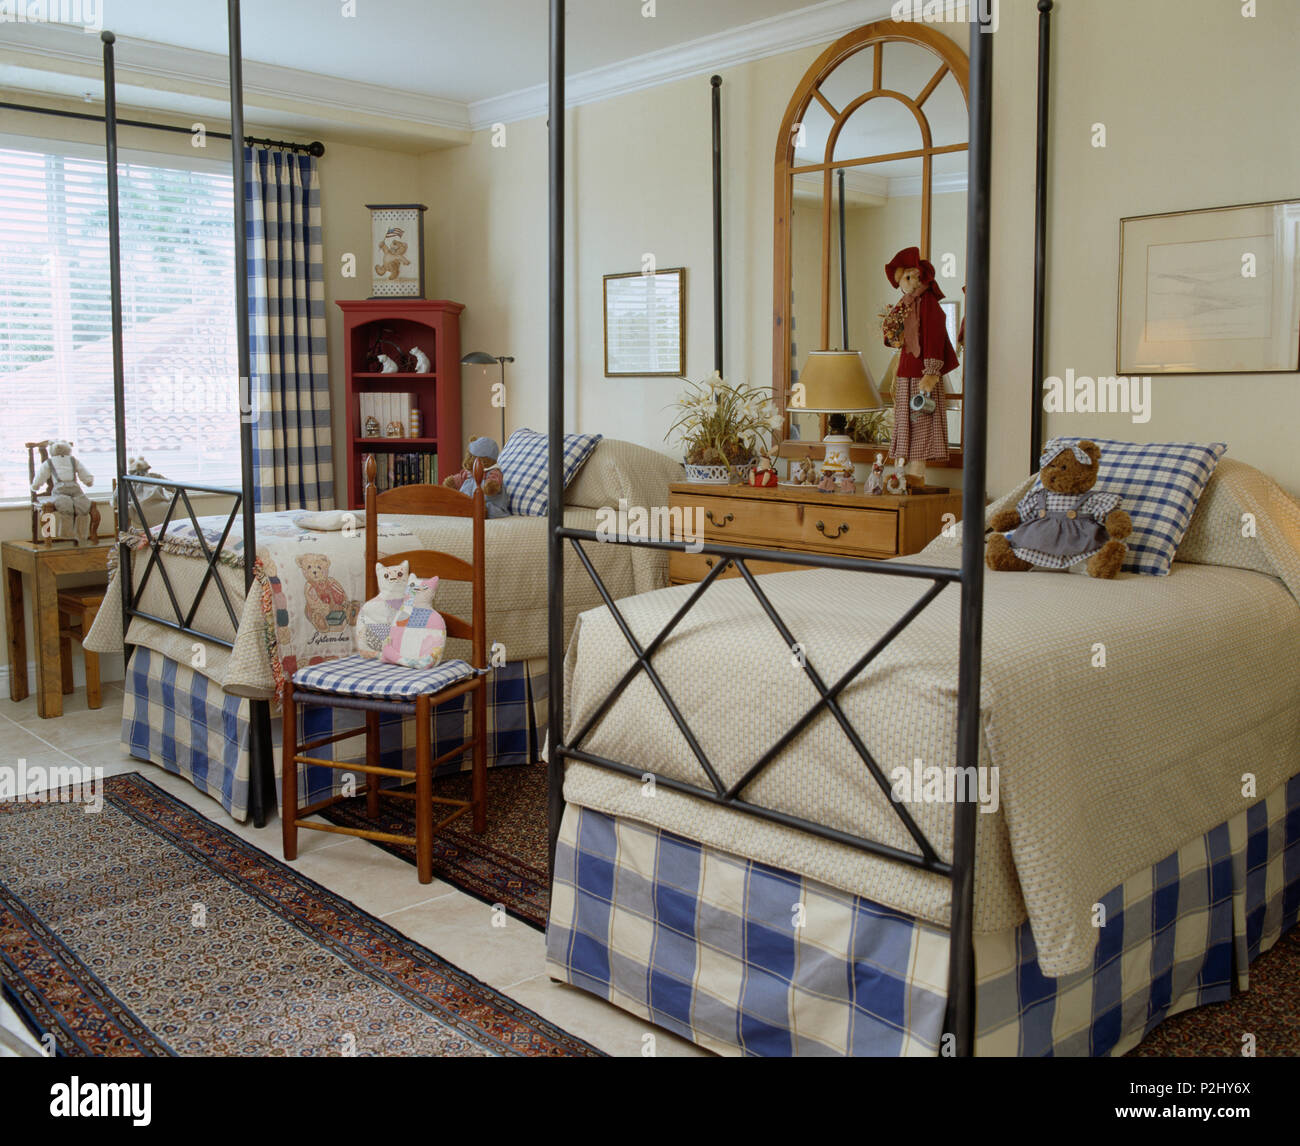 Blue+white checked valences on twin metal-framed beds in light and airy children's coastal bedroom Stock Photo